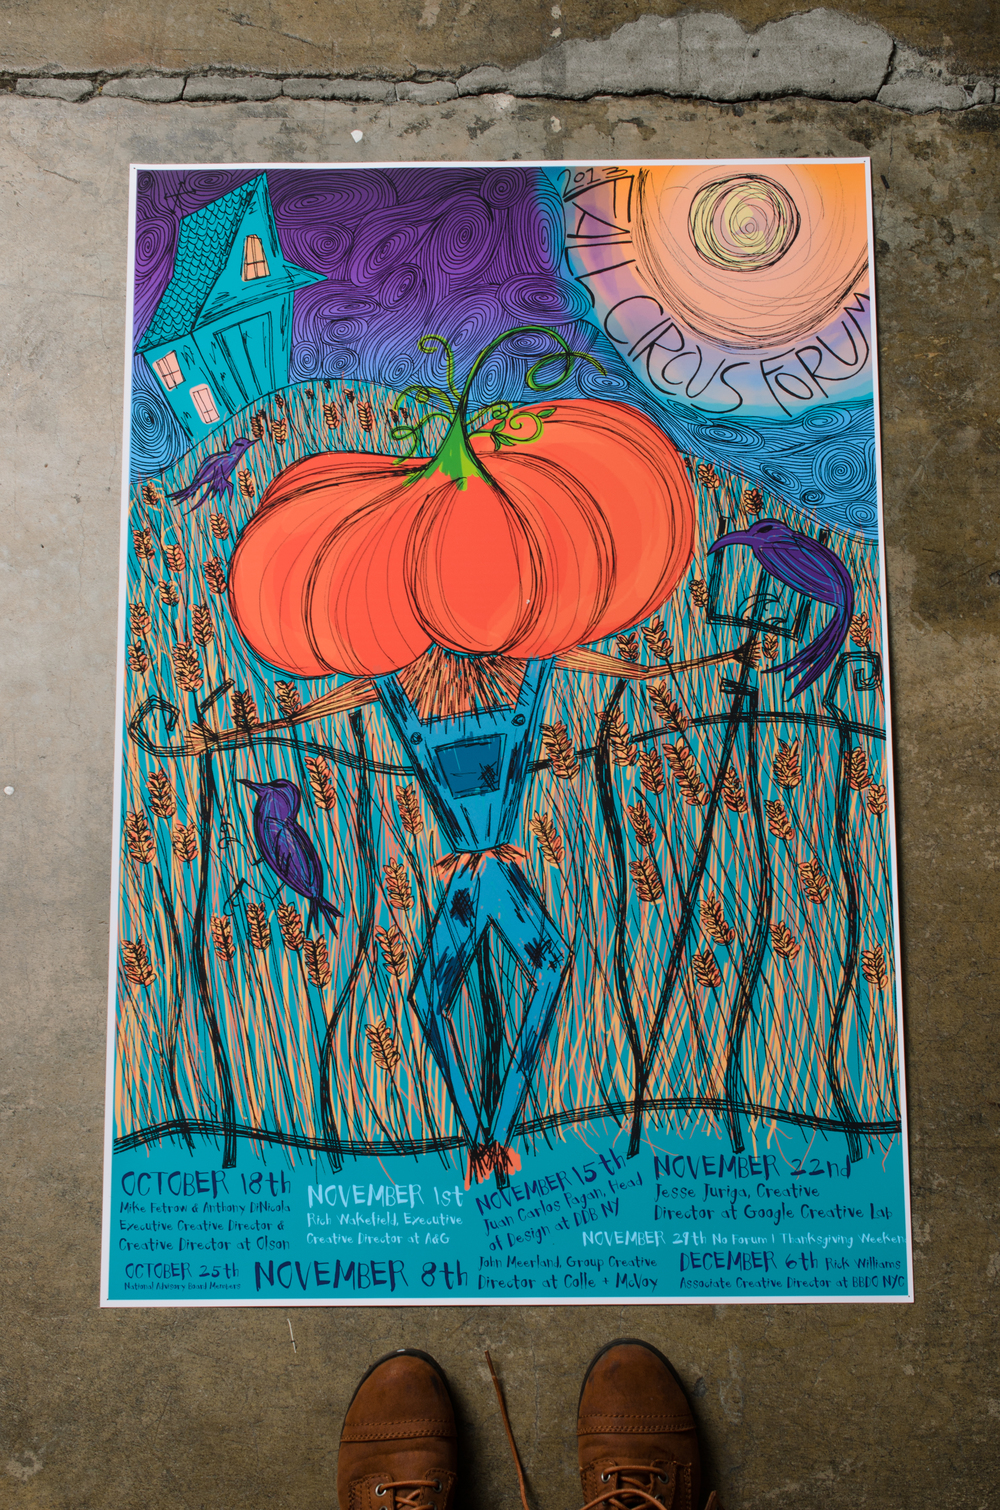 Creative Circus Fall Forum Poster